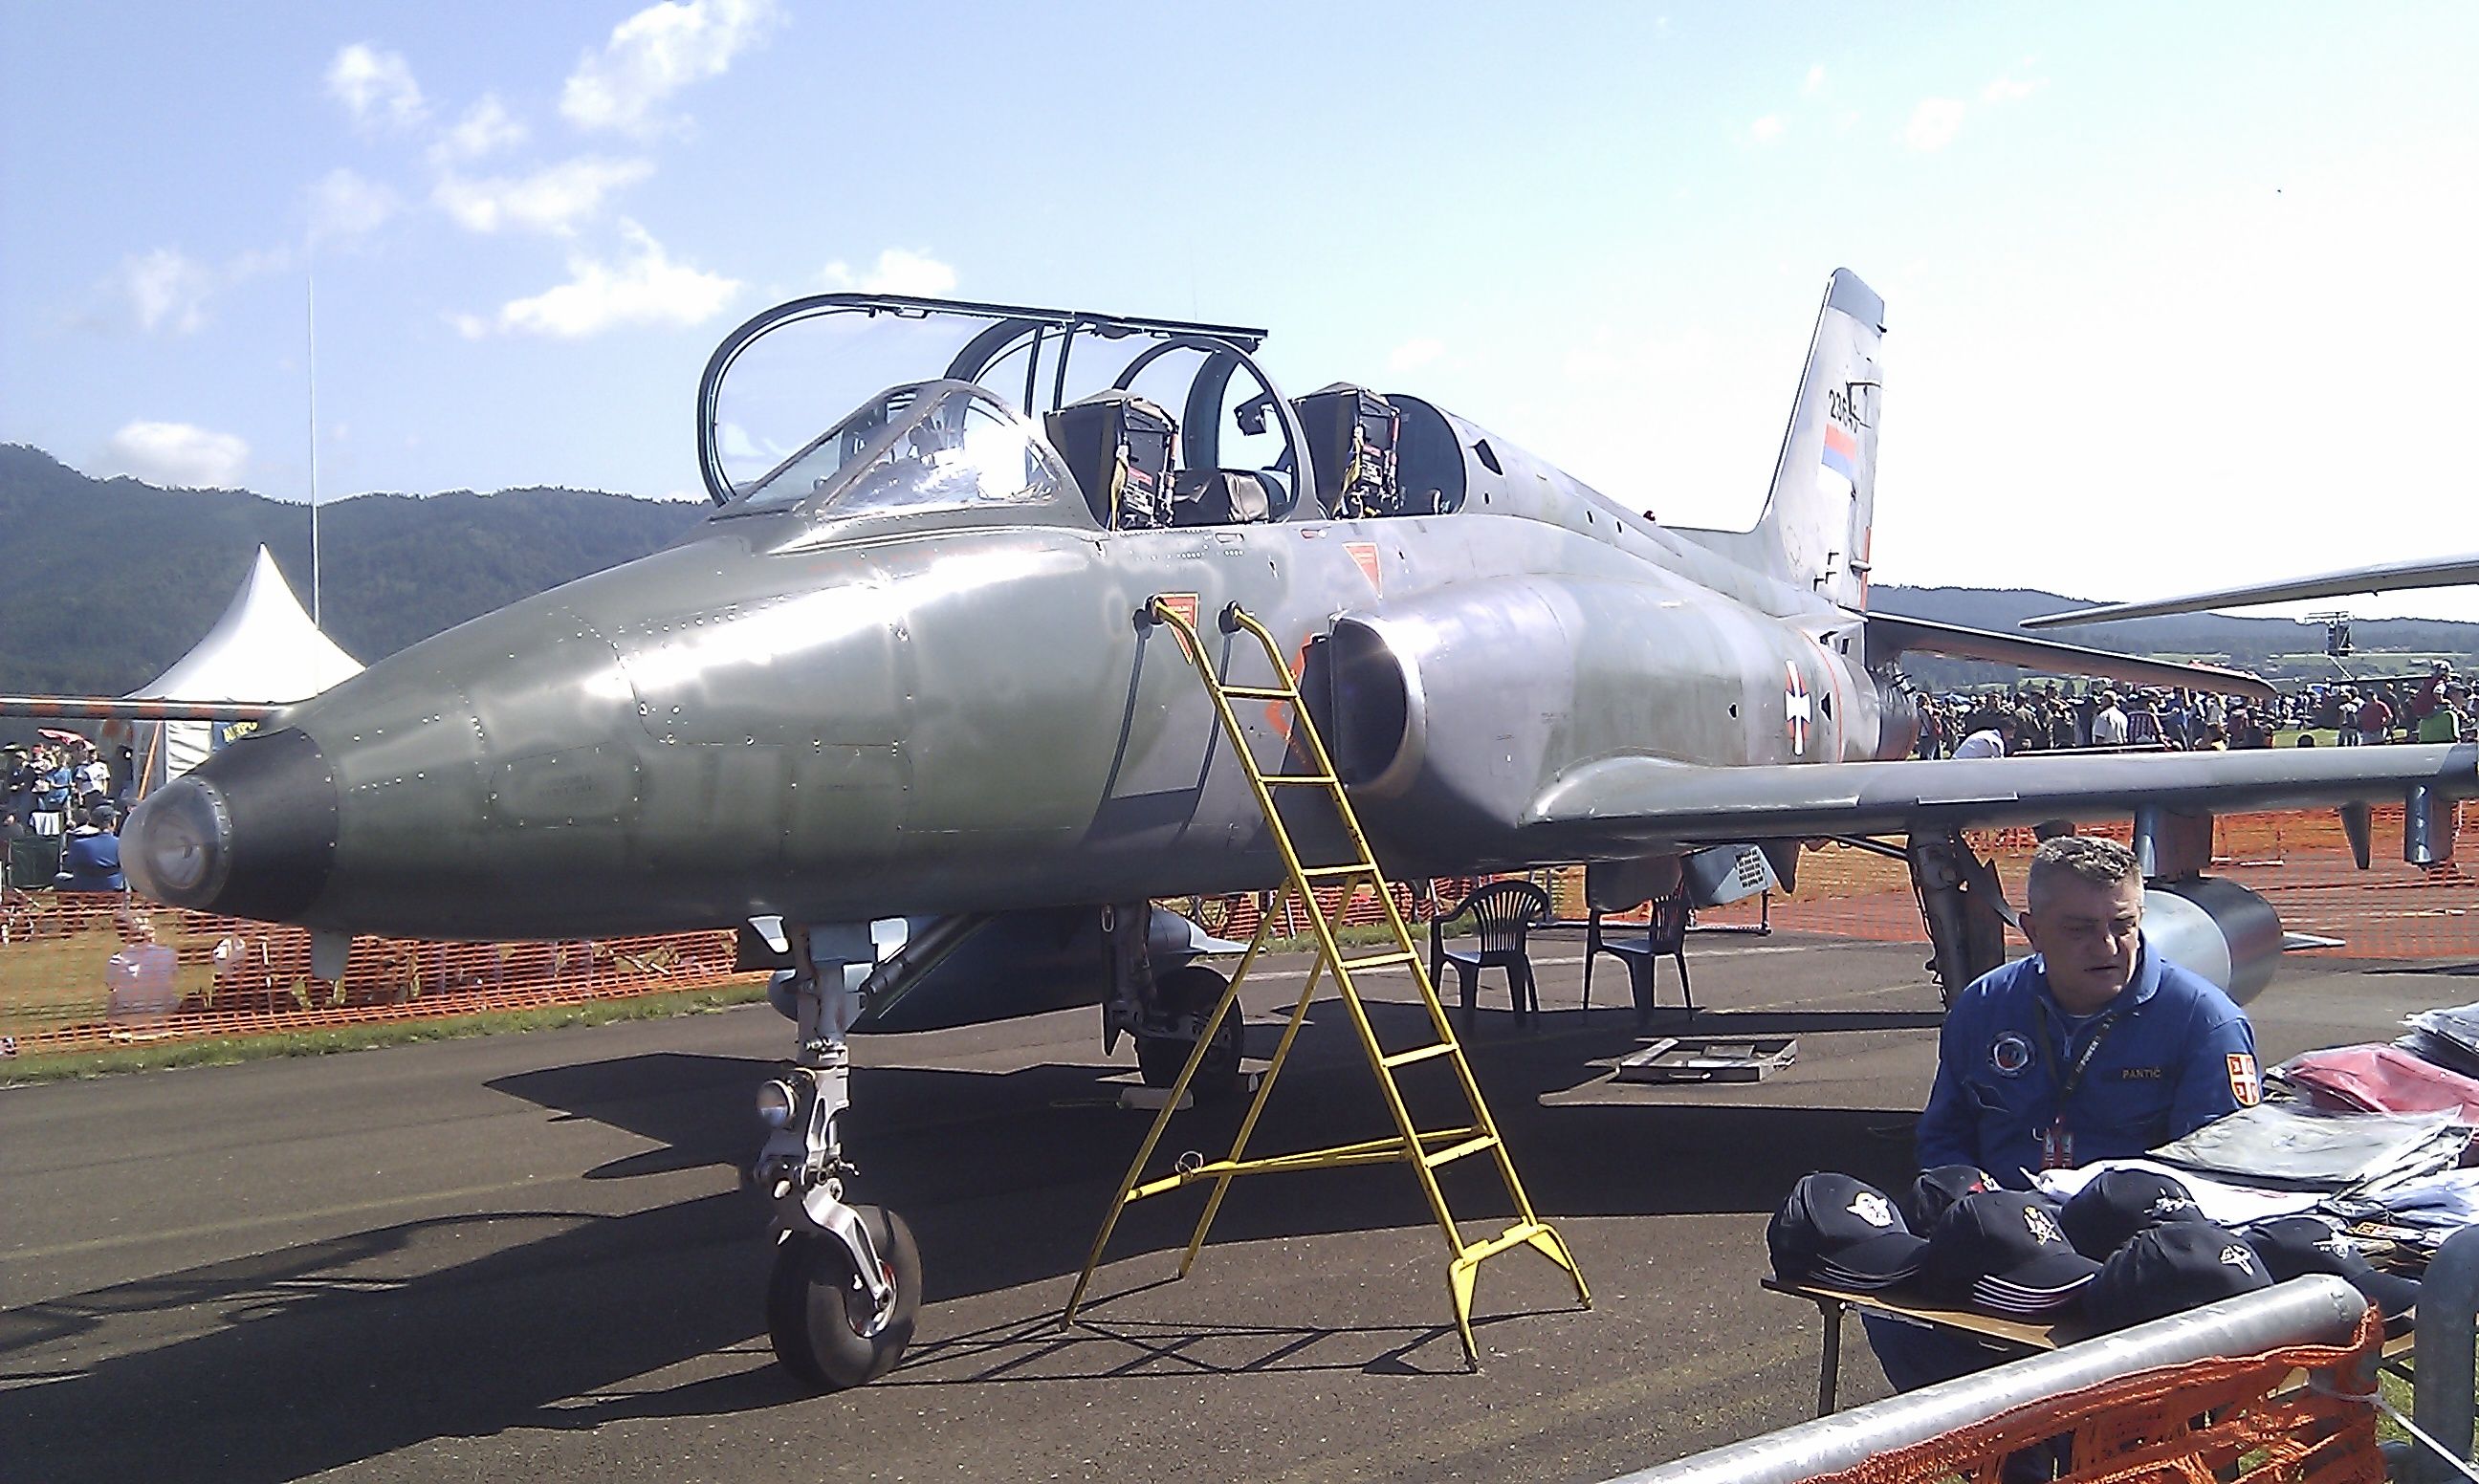 File:G-4 Super Galeb of the Serbian Air Force at Airpower 11.